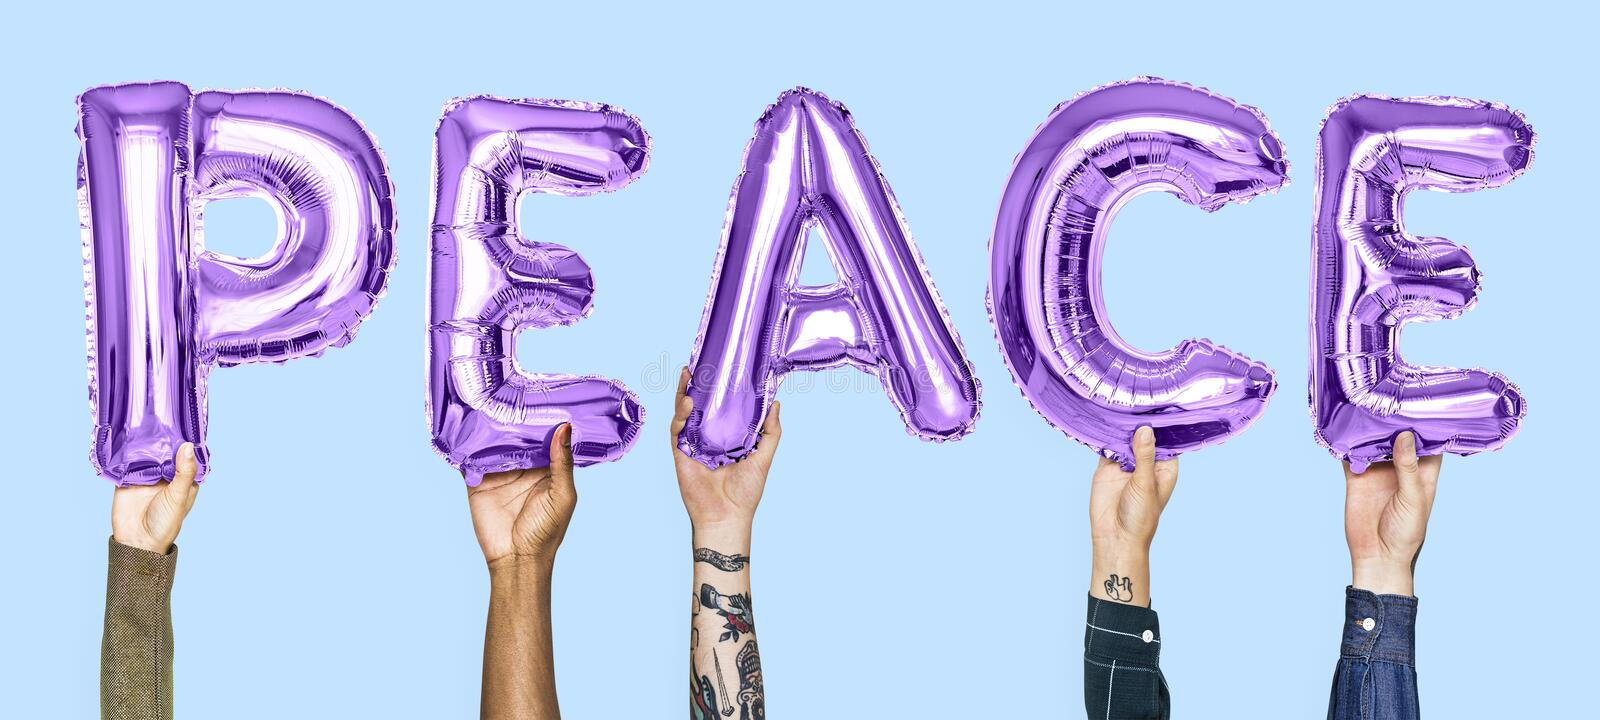 Purple alphabet balloons forming the word peace stock photography